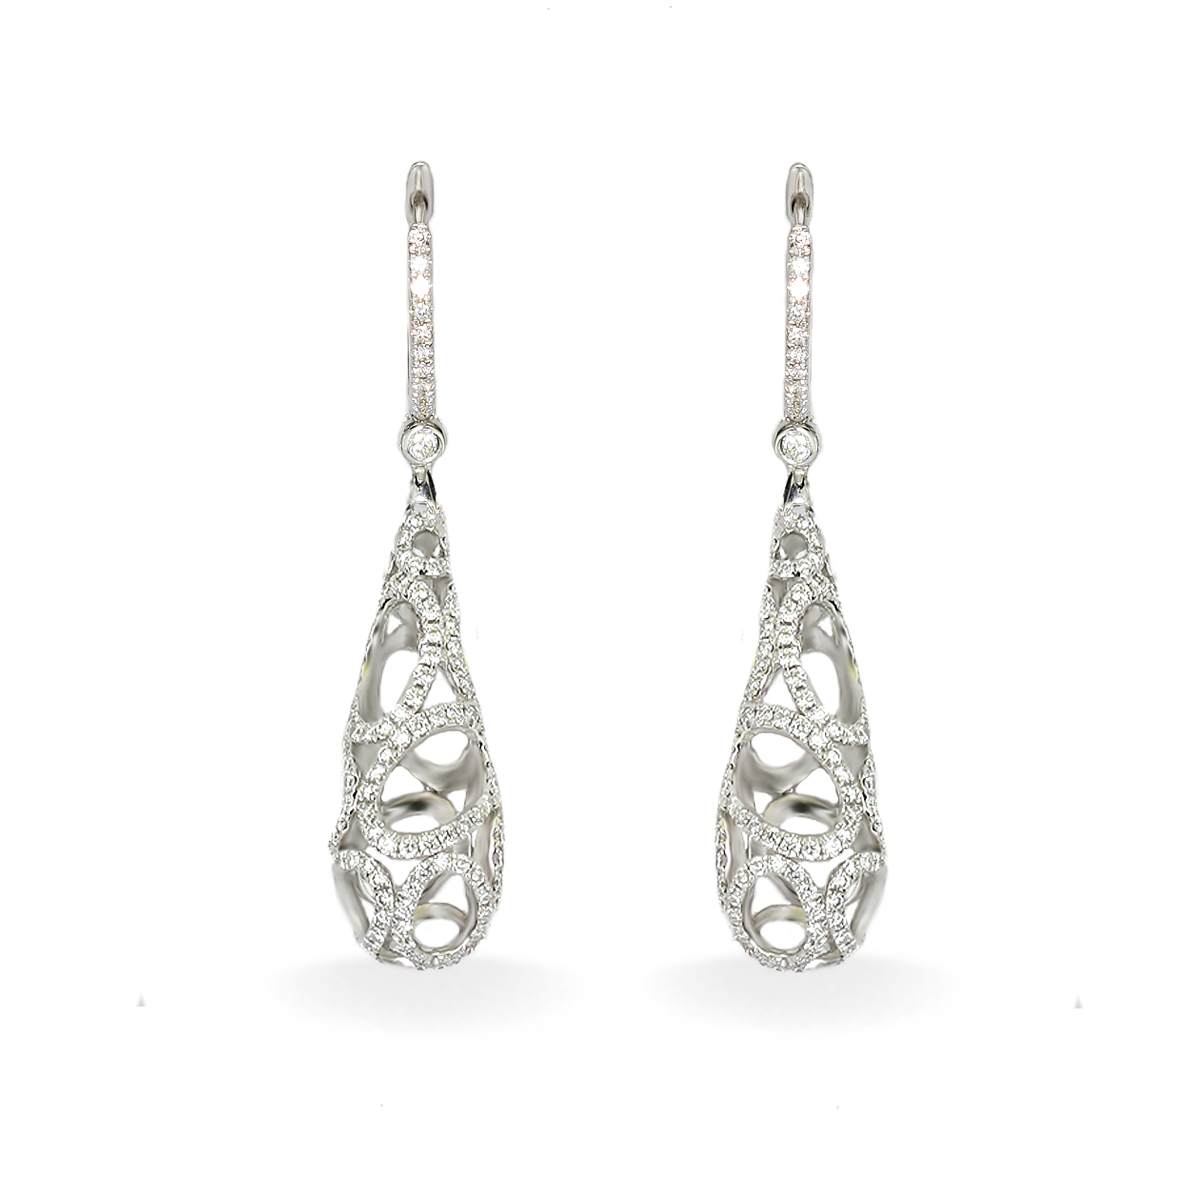 A Stunning Handpicked 18k White Gold And Diamond Earrings By Designer Lanae